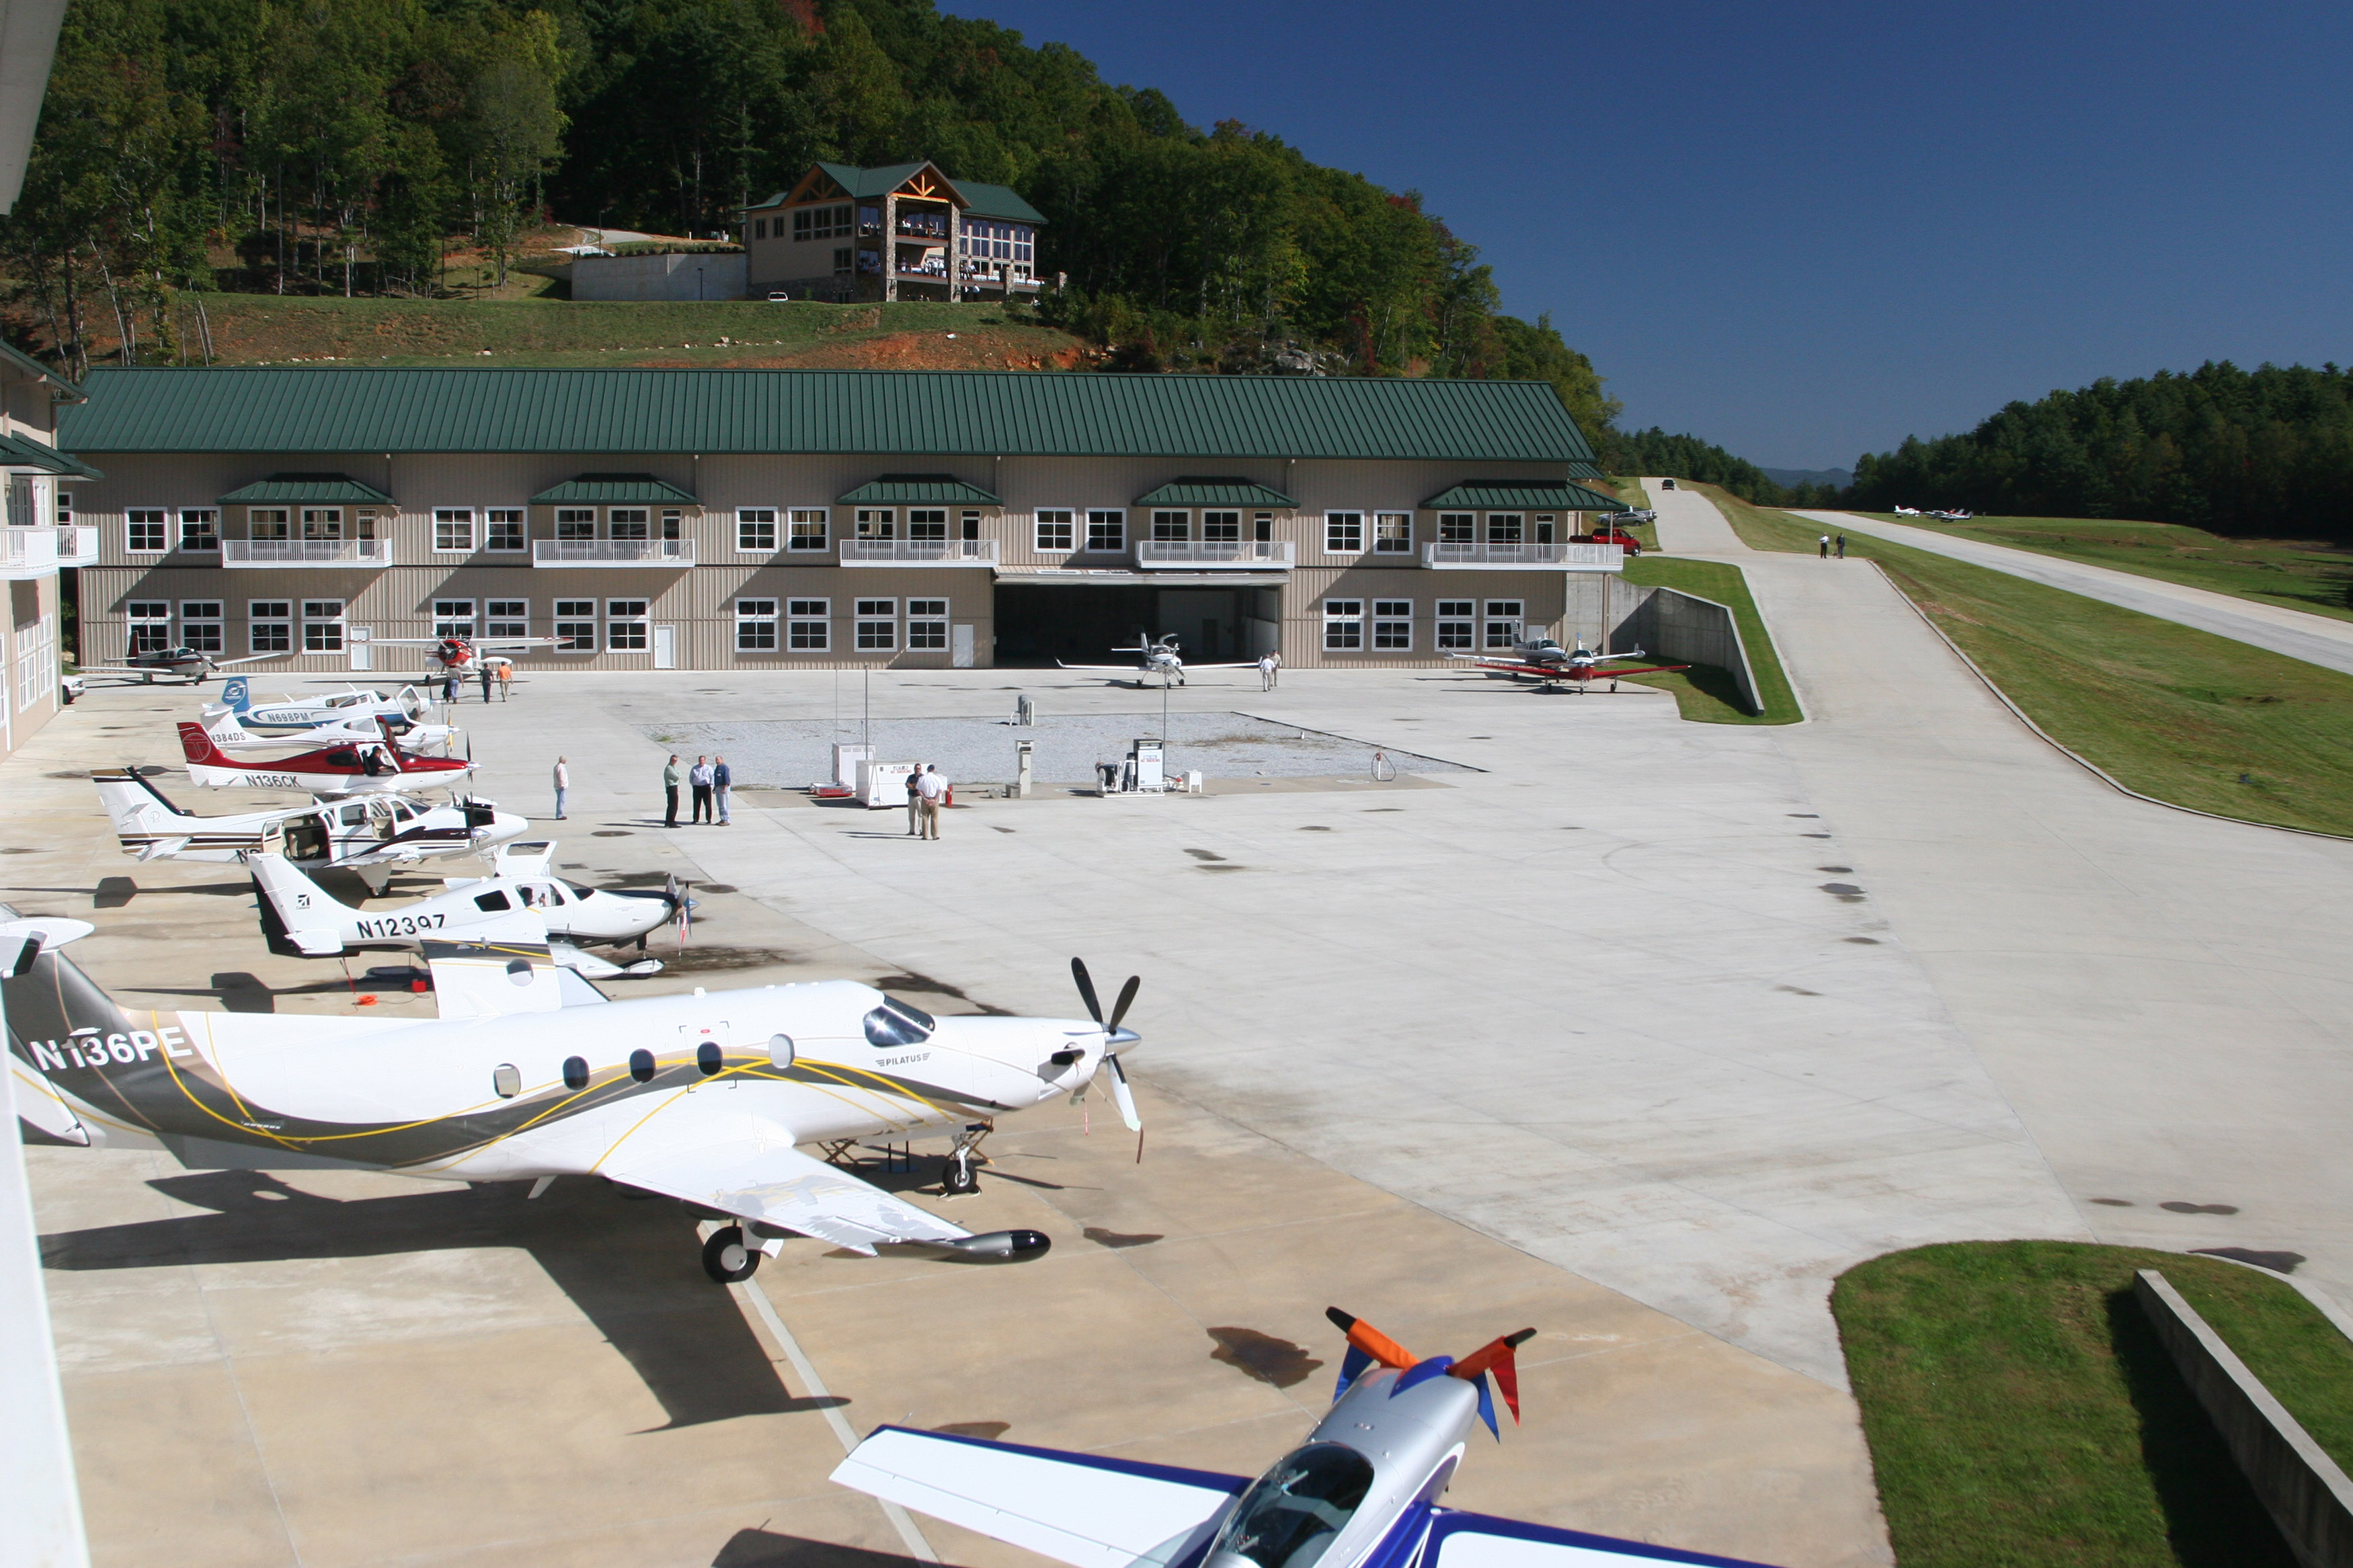 Heaven's Landing is a mountain airstrip community nestled among the Appalachian Mountains in Georgia's Rabun County. Photo courtesy of Heaven's Landing.